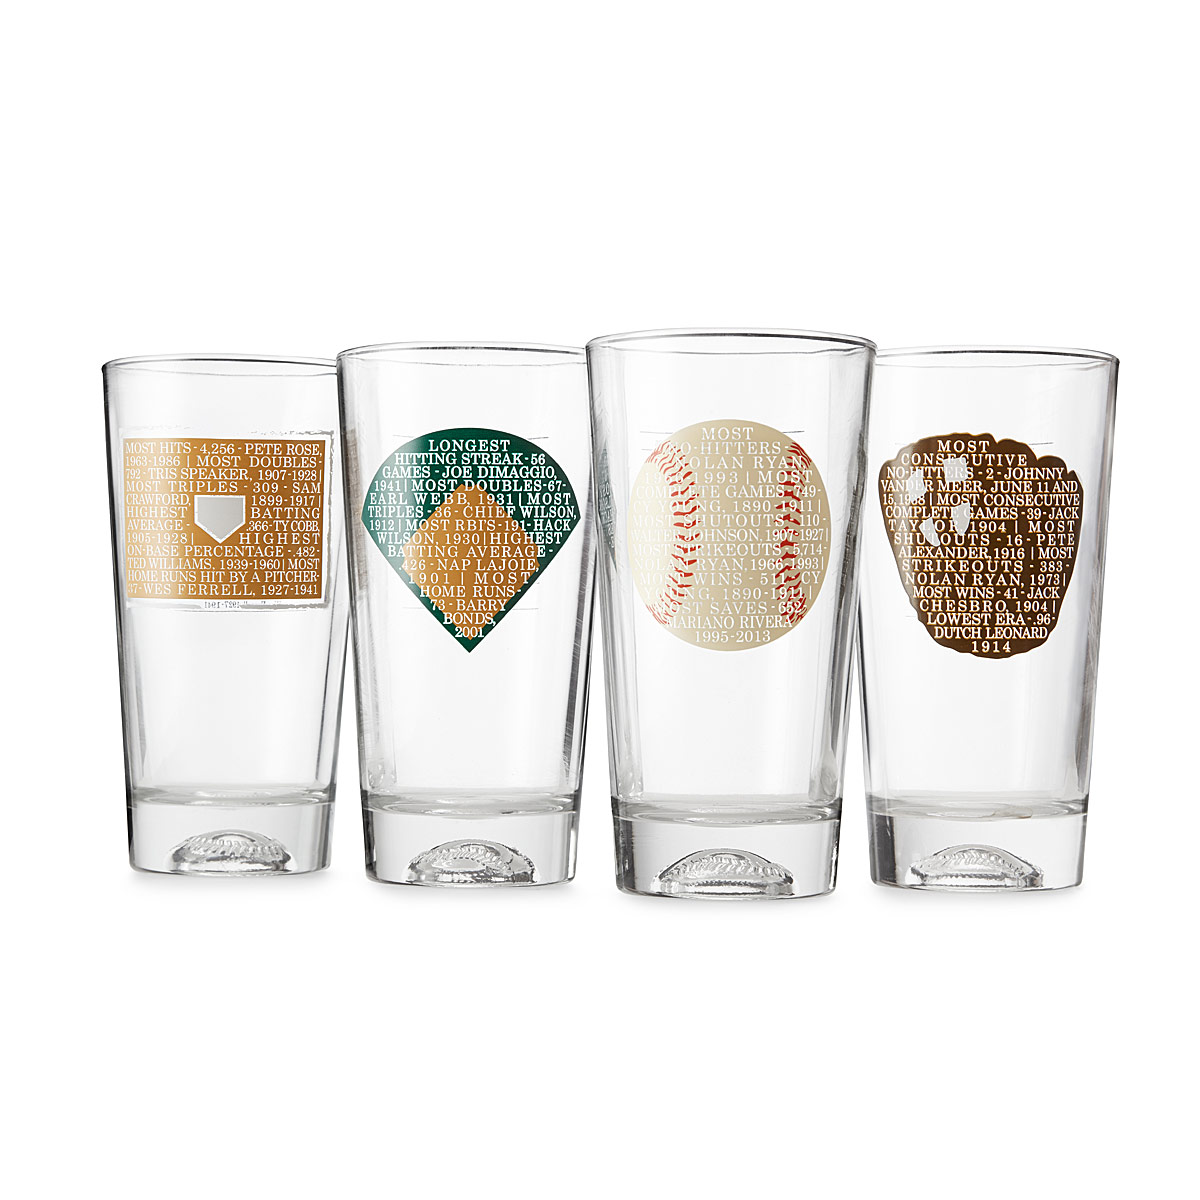 Drawn spectacles drinking glass Breaking Tumbler Sets of Colored